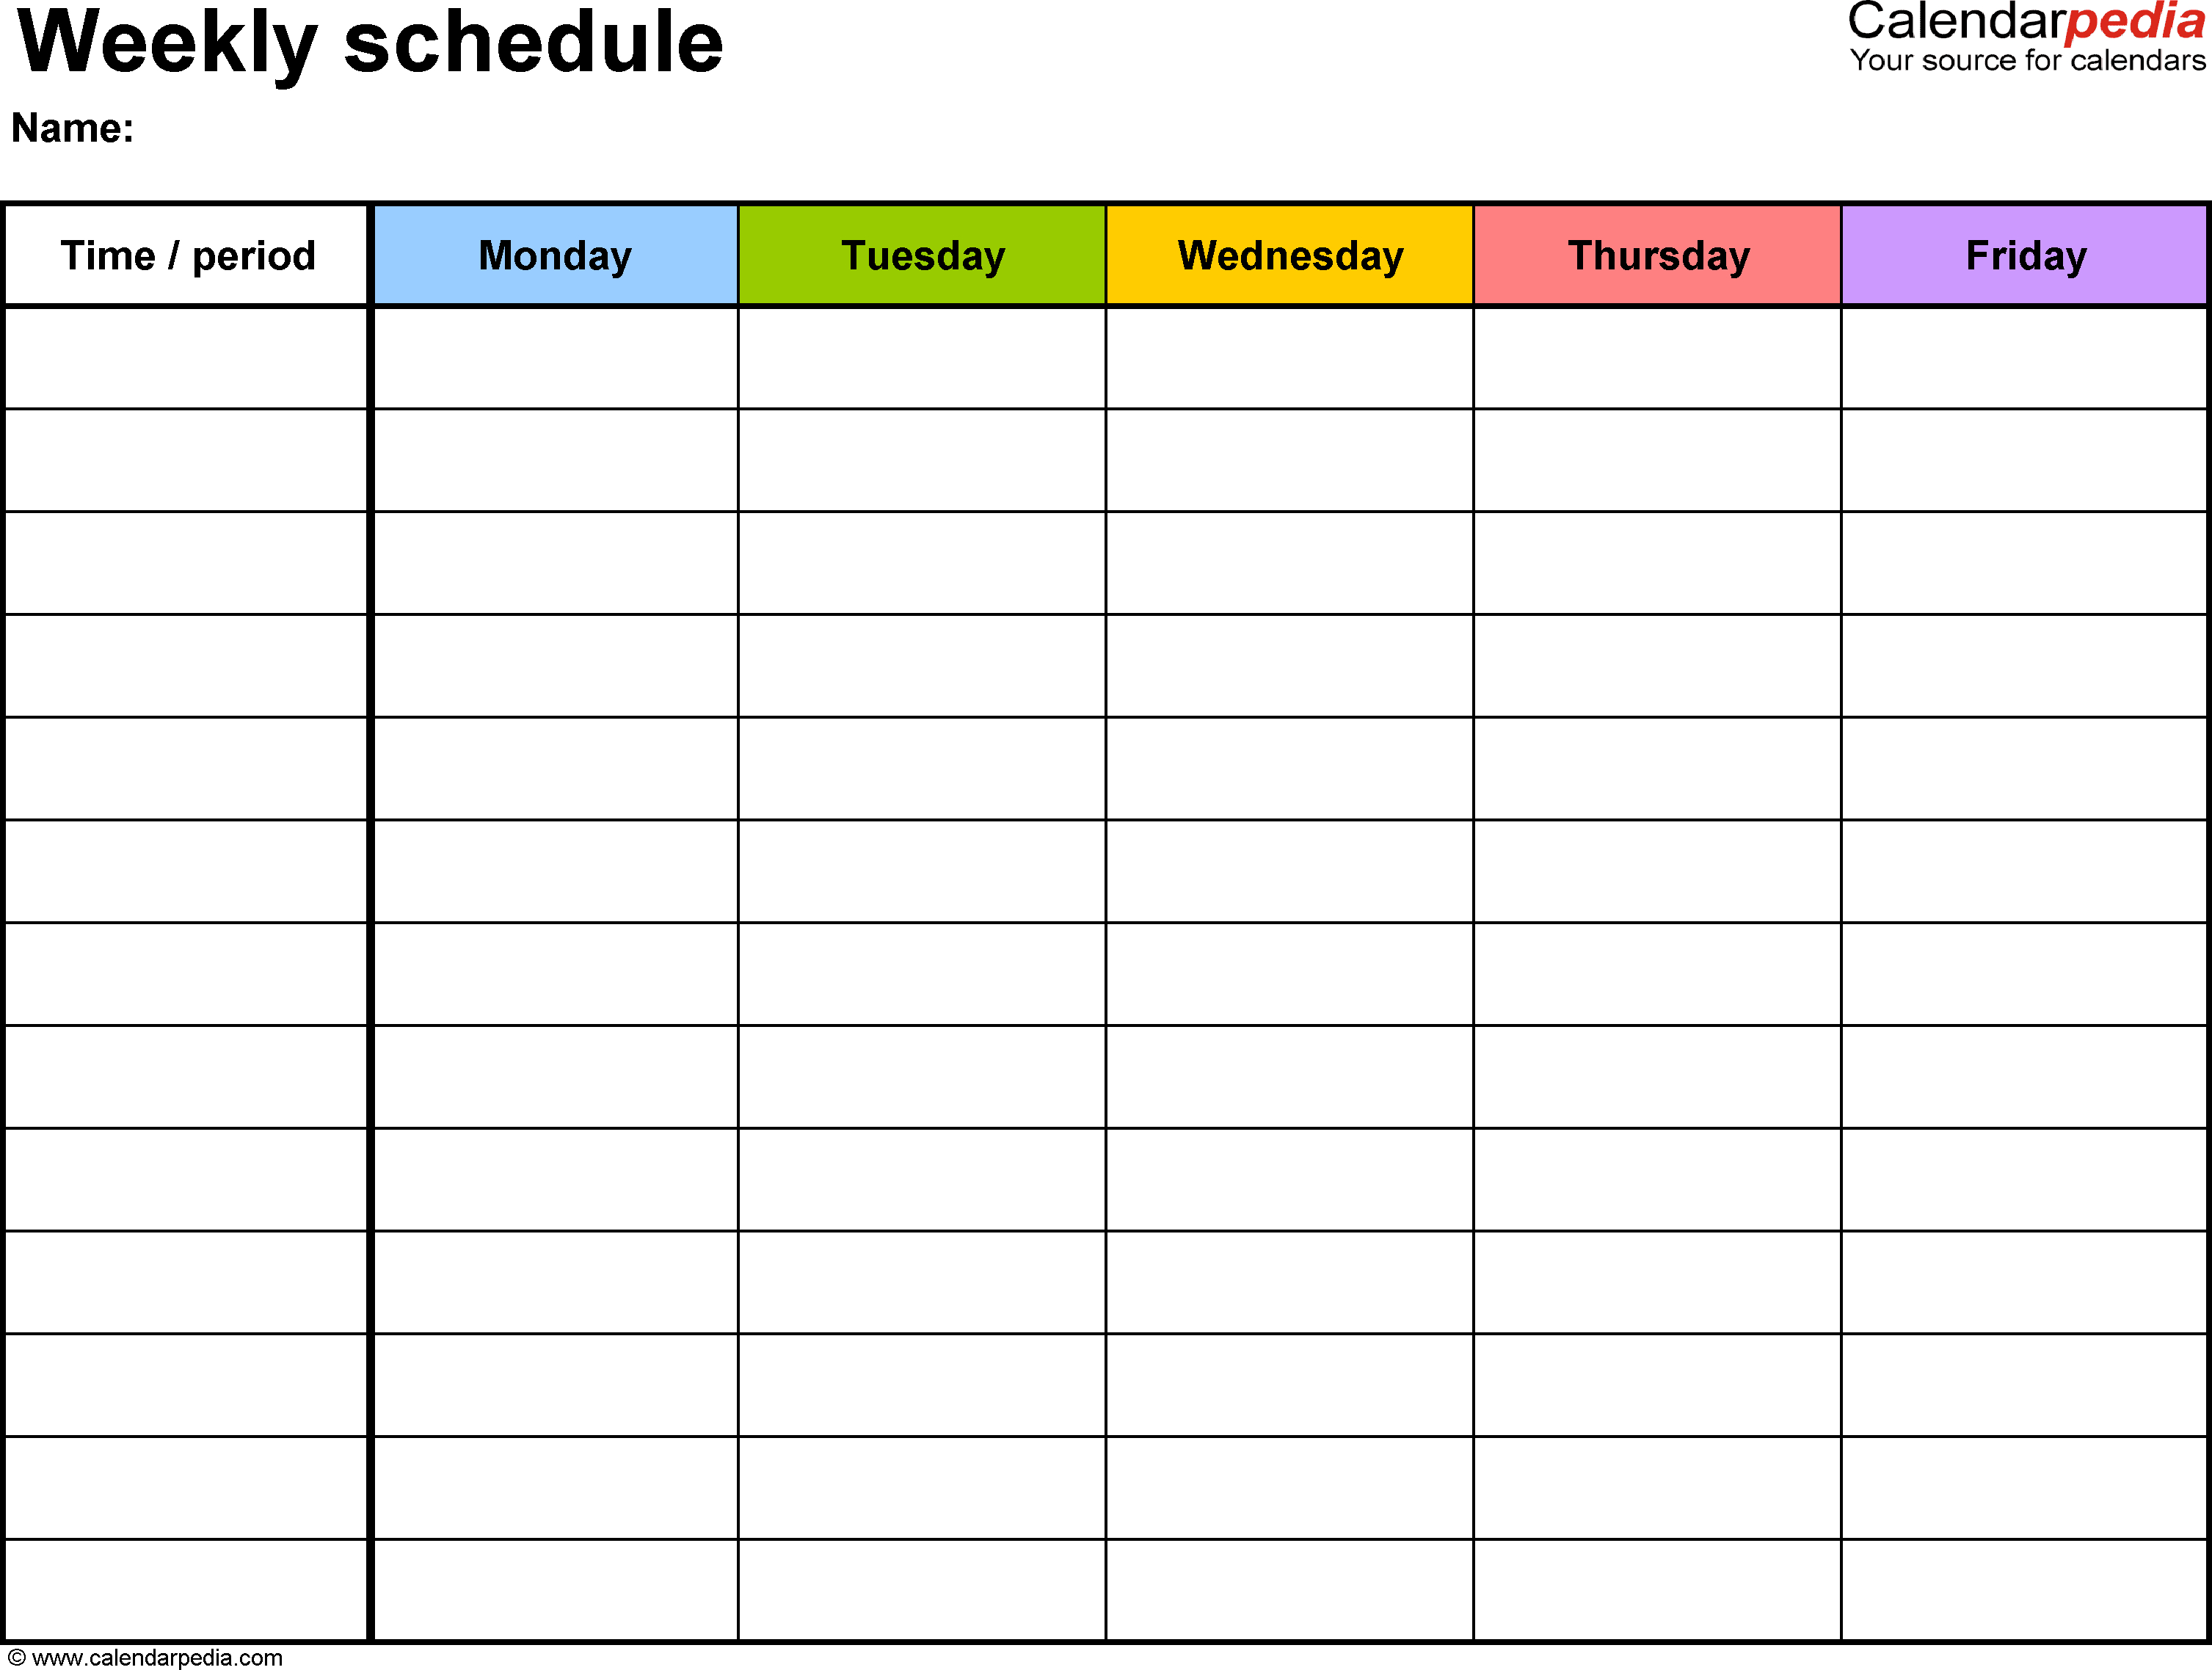 Dayday Schedule Template - Colona.rsd7